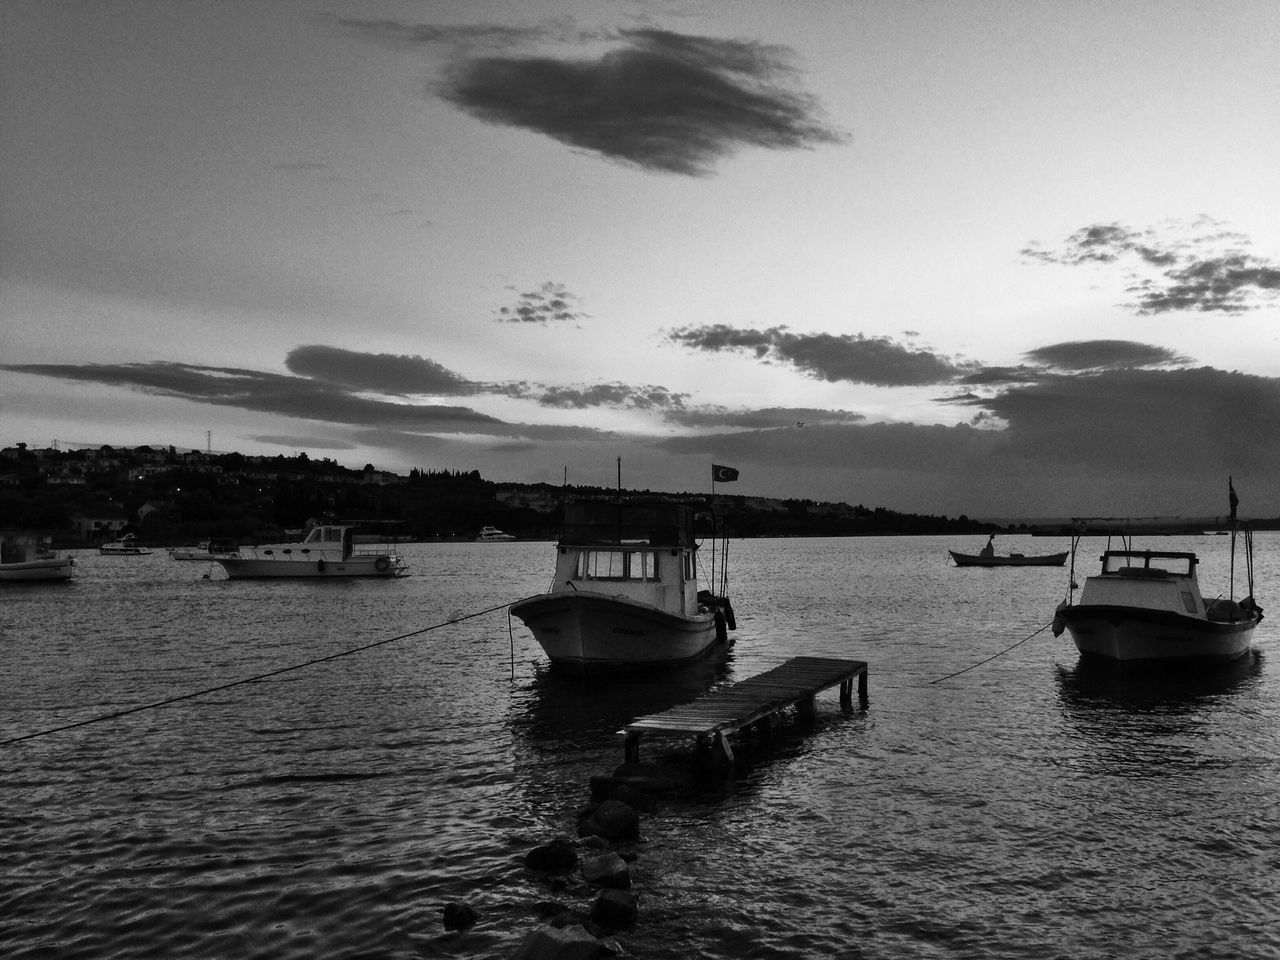 Boats Moored On Shore Against Cloudy Sky